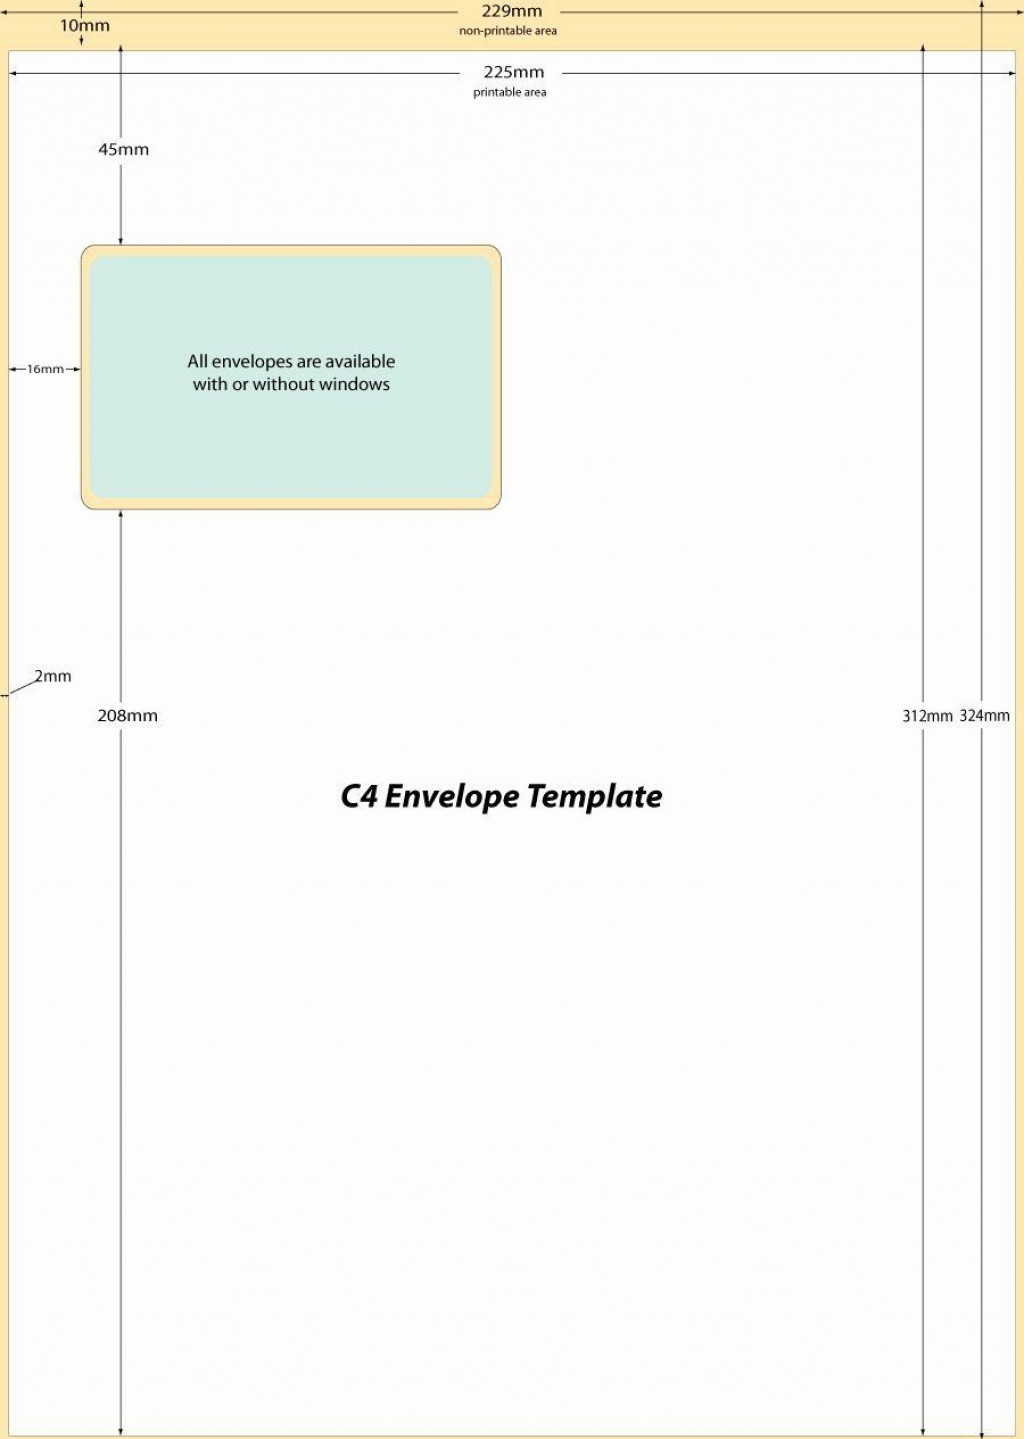 009 Top 10 Envelope Template Word Sample  Size Microsoft #10 Double WindowLarge